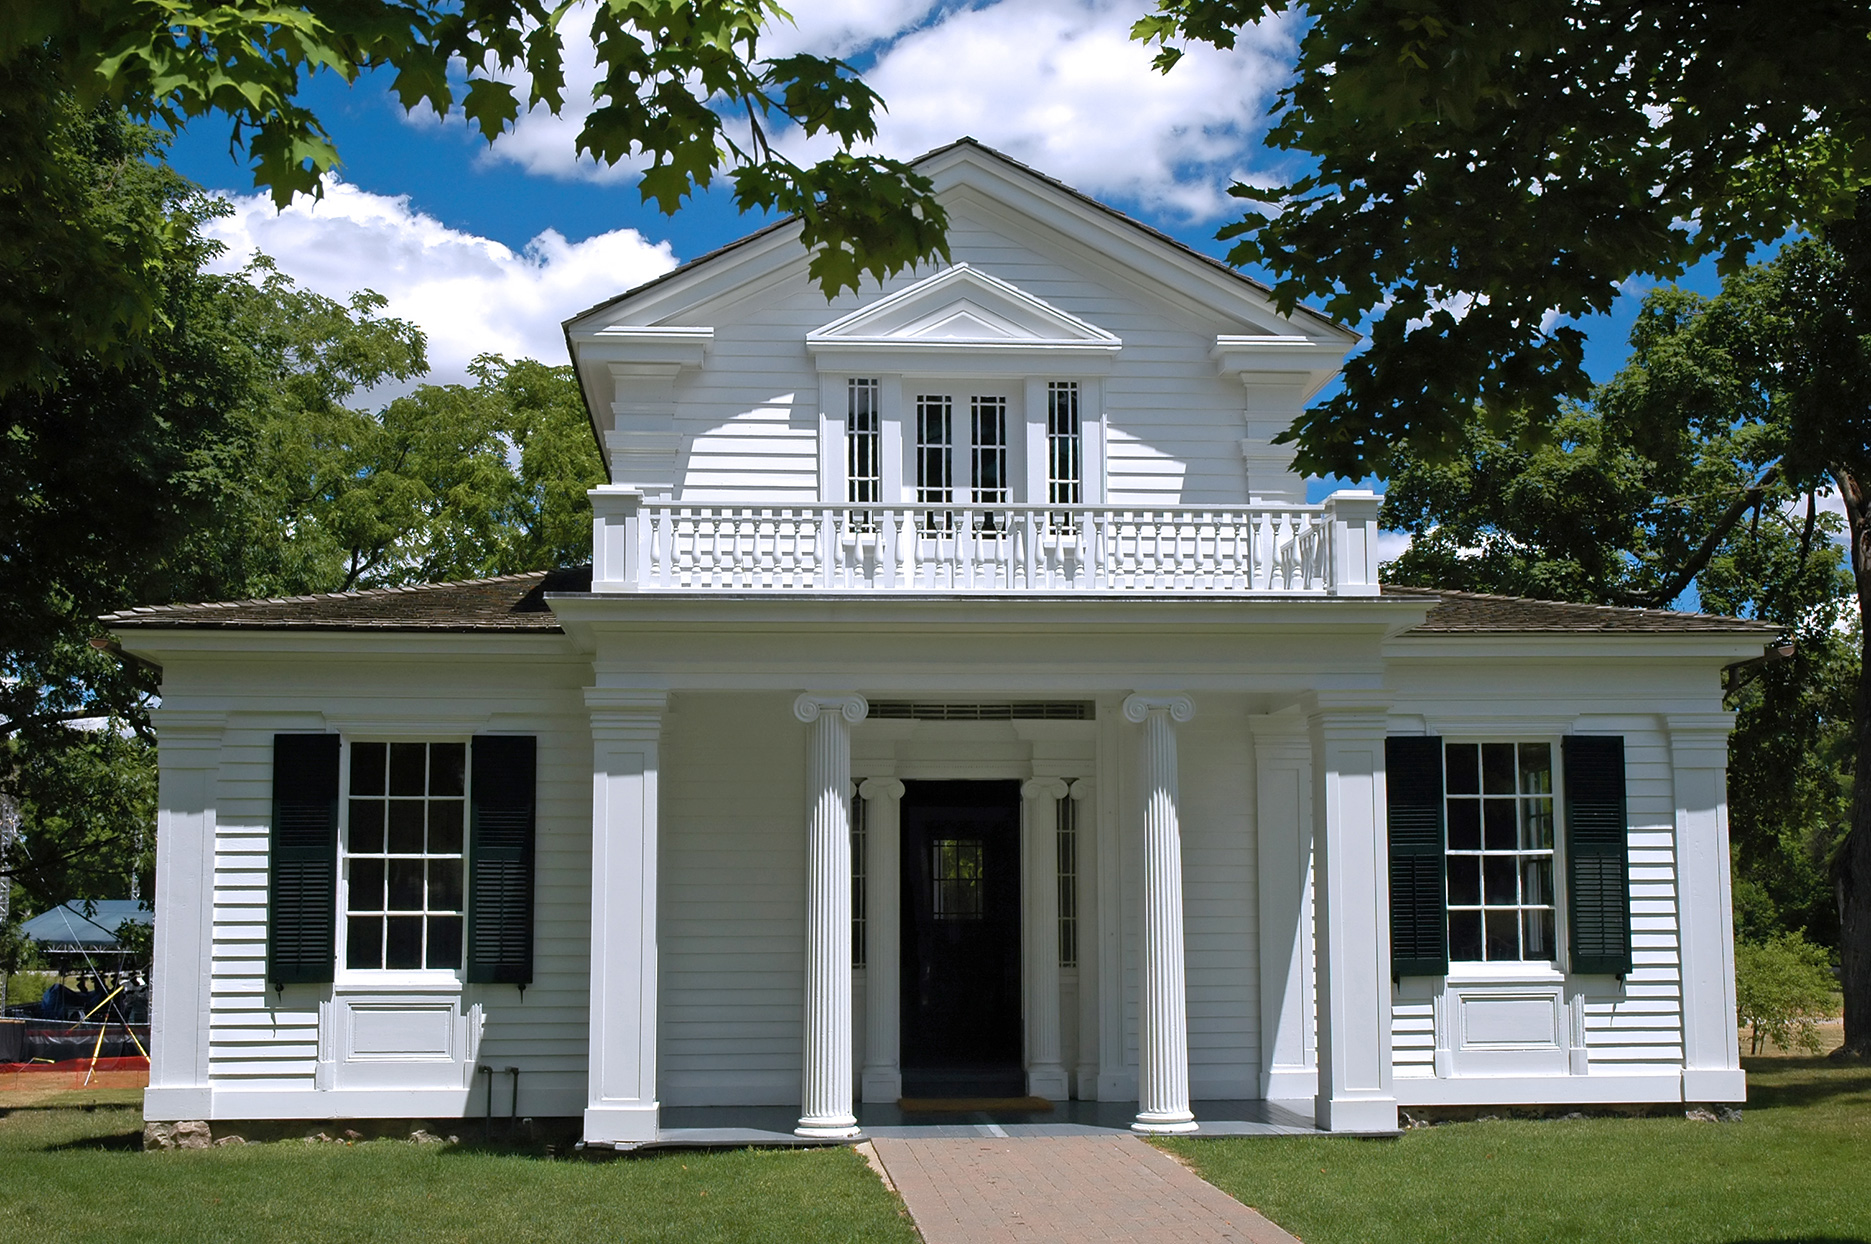 greek revival style home white pillars and columns